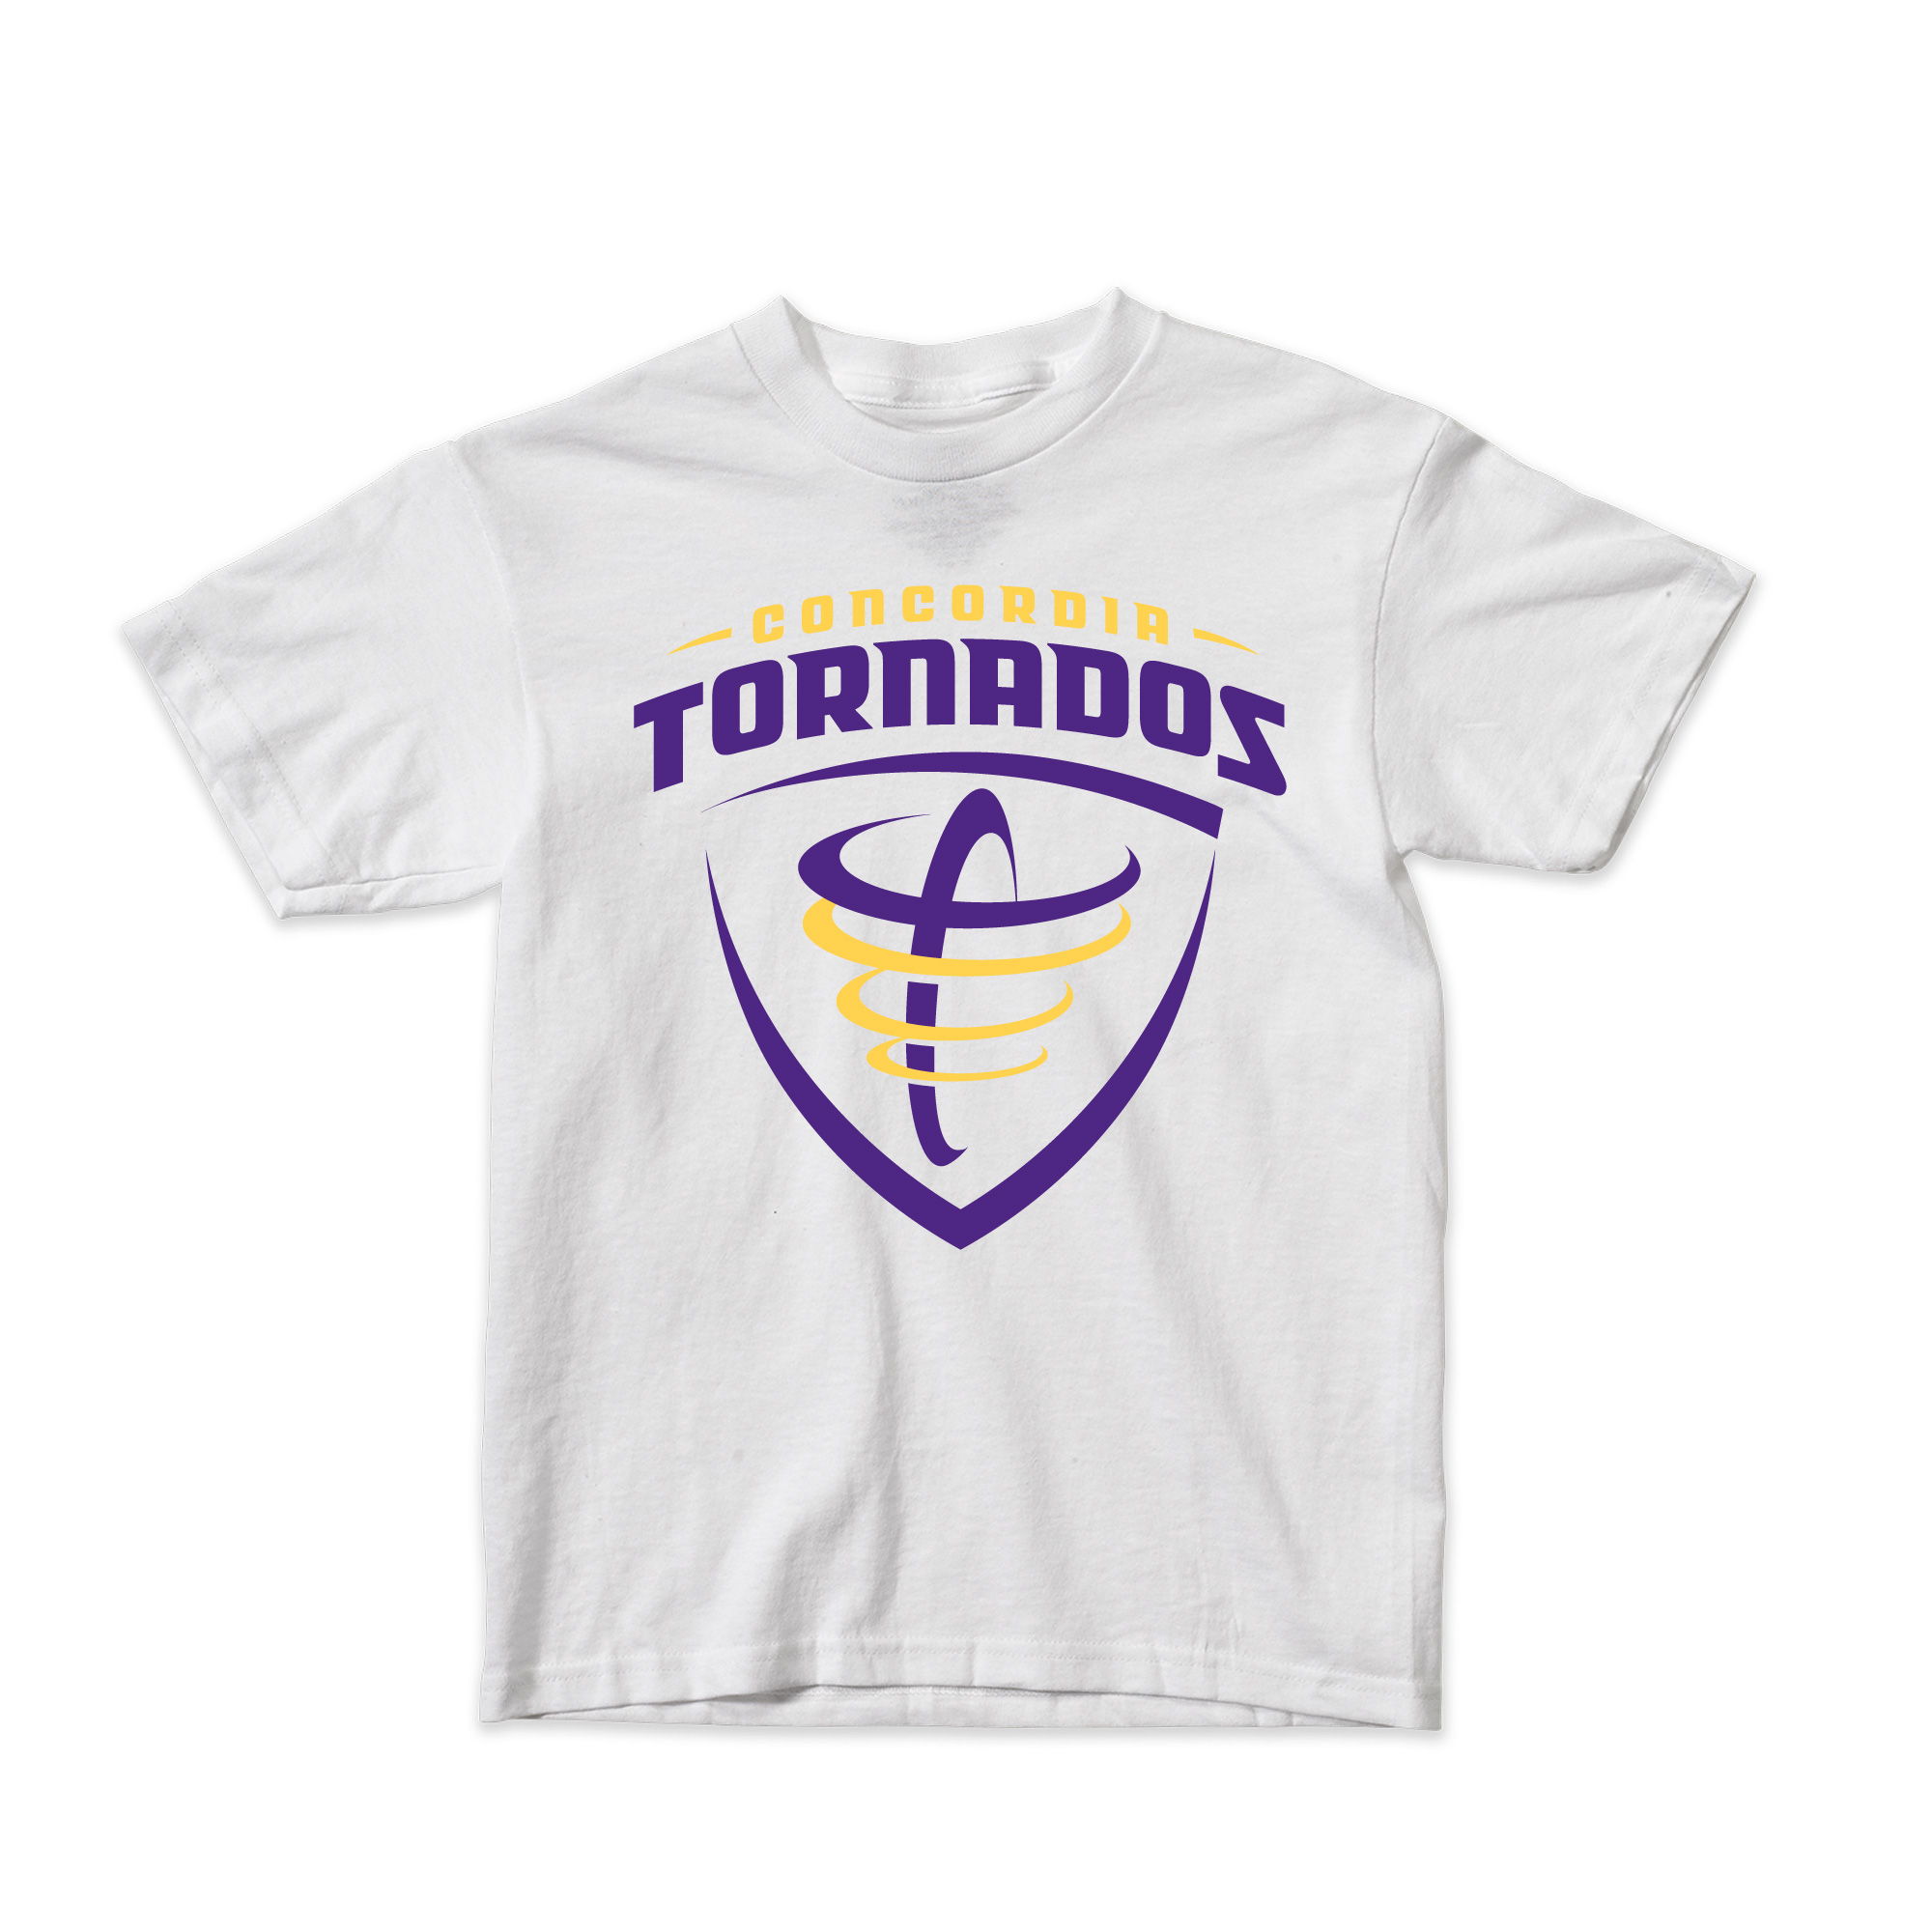 Youth Tornados Tee - White